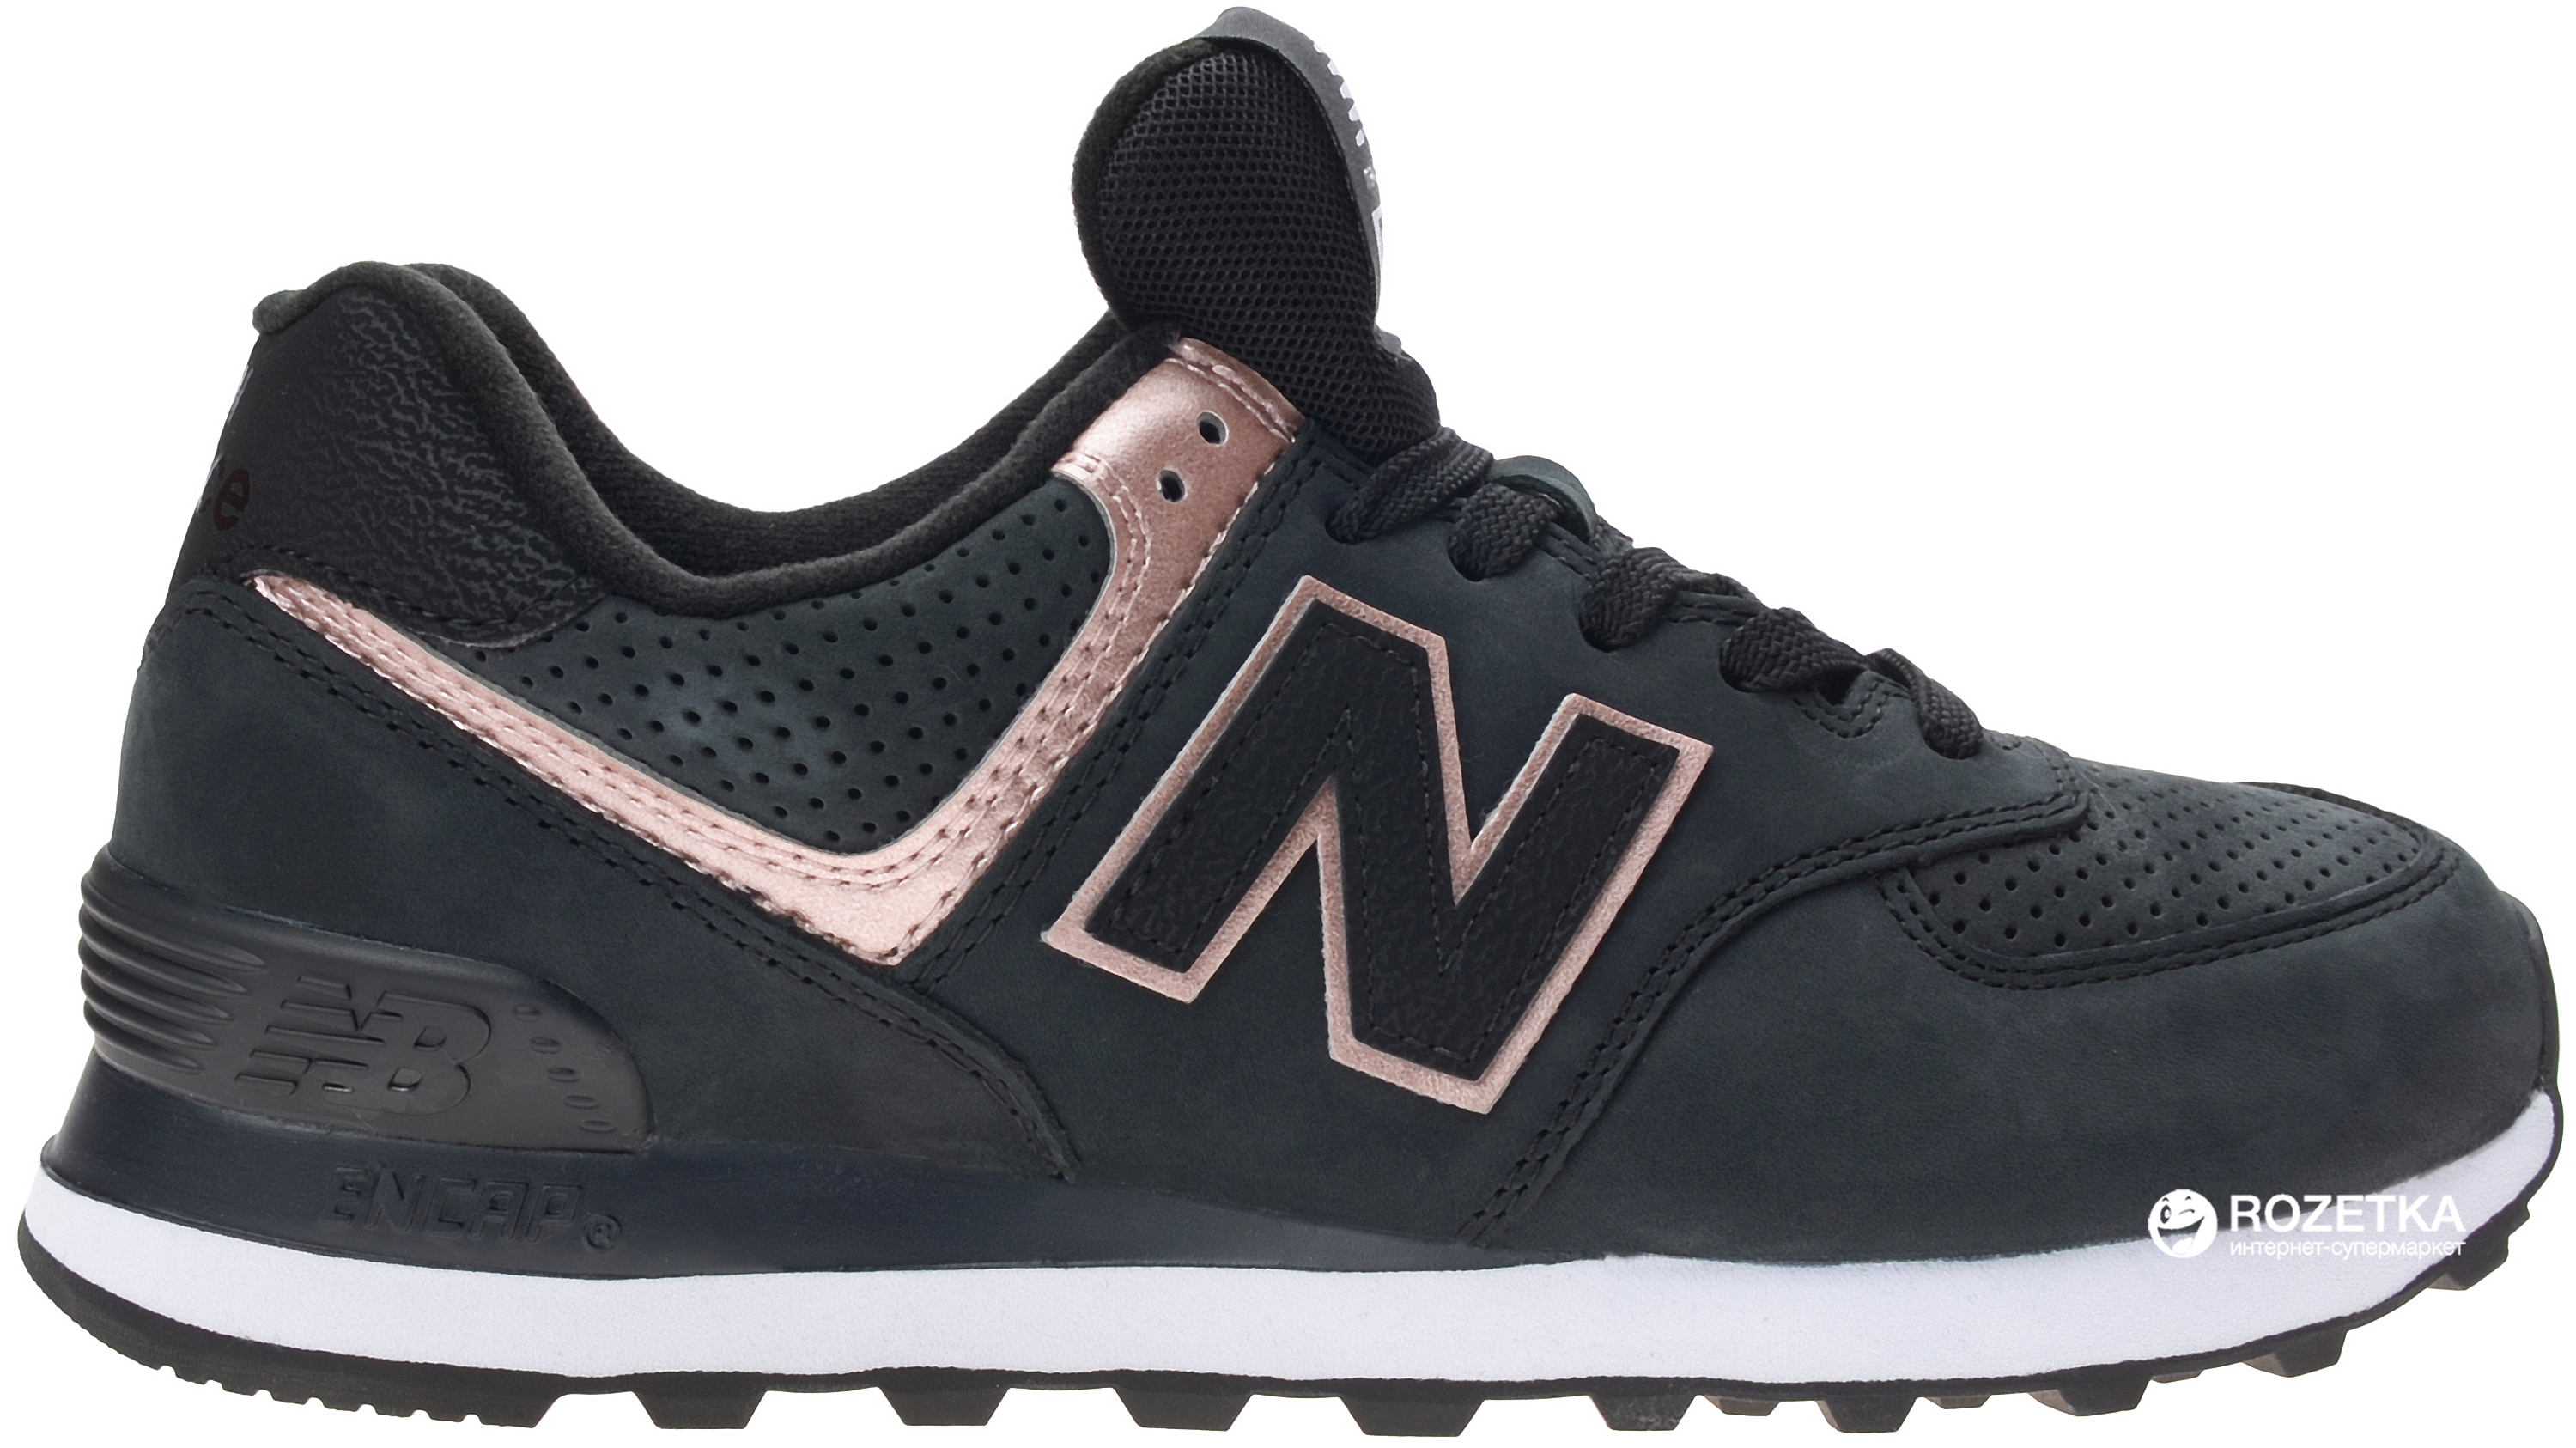 new balance 574 40.5 buy clothes shoes online